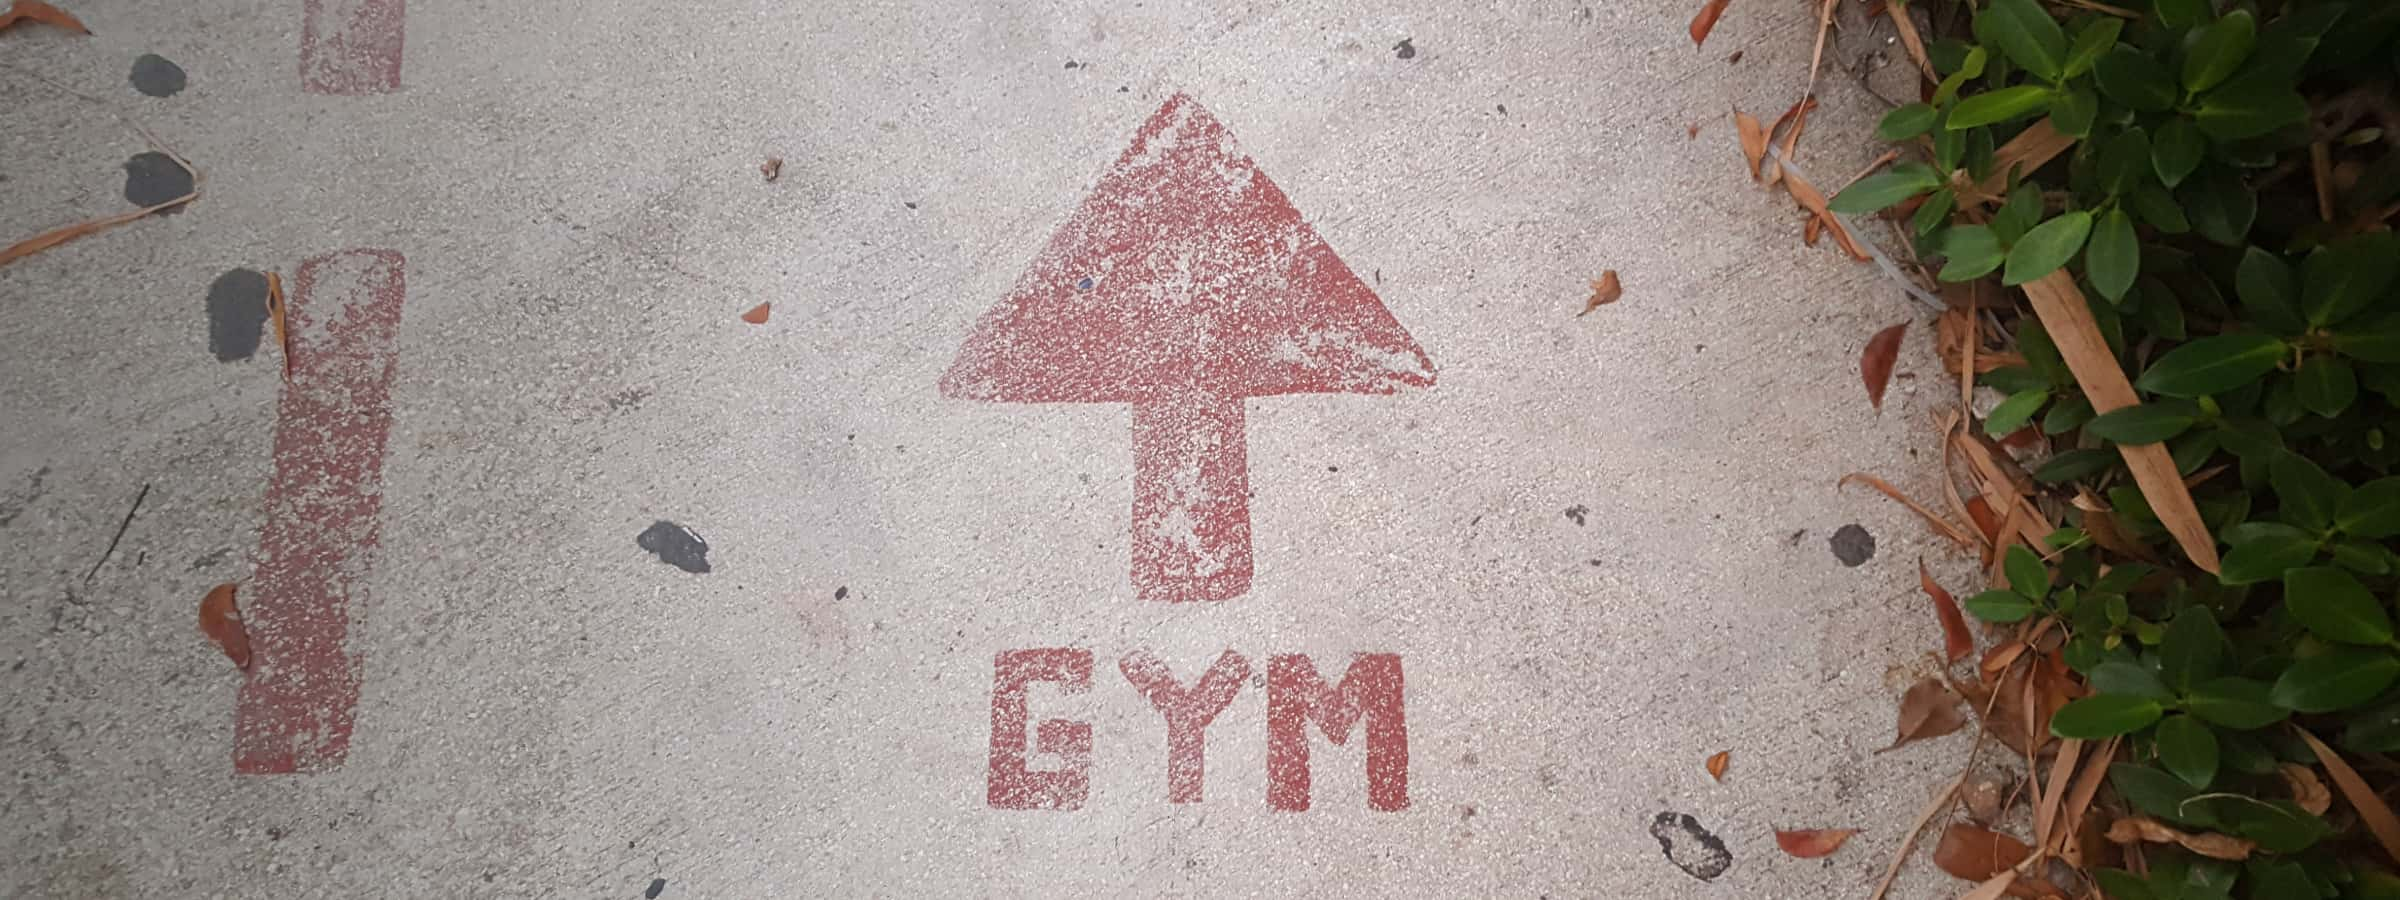 Cement floor with the word gym painted on it in red and an arrow